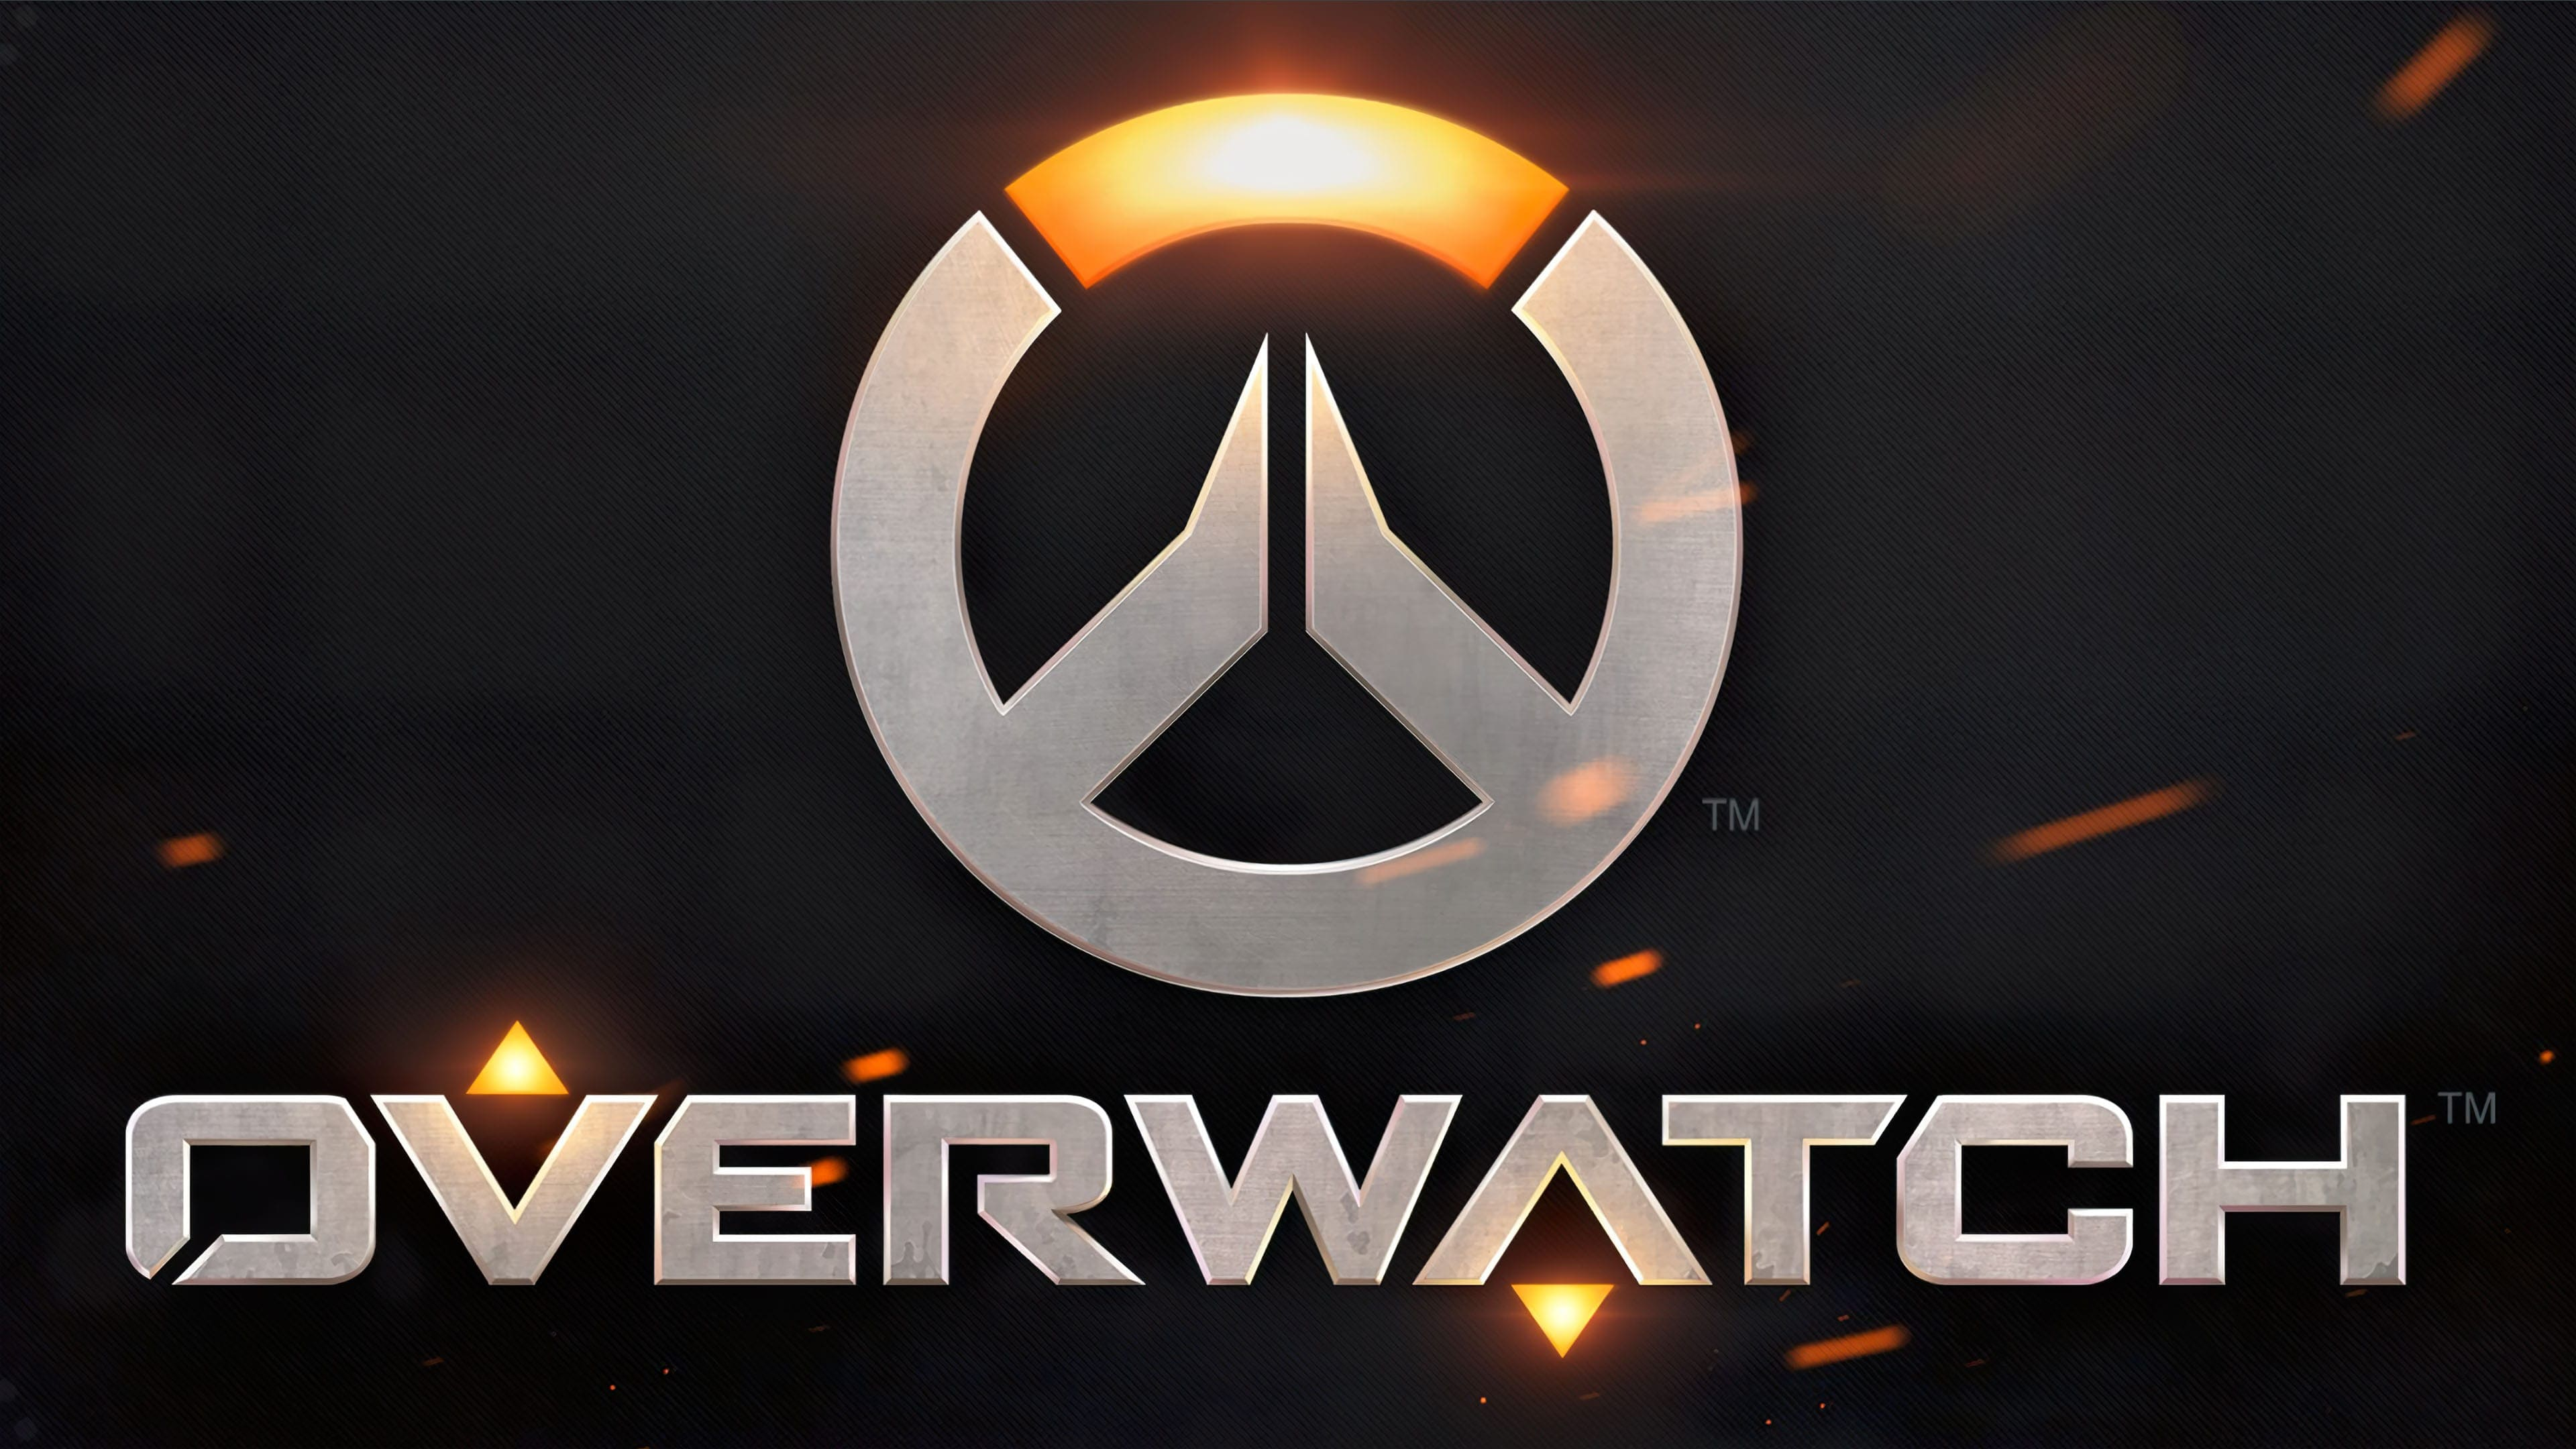 Overwatch Logo The Most Famous Brands And Company Logos In The World